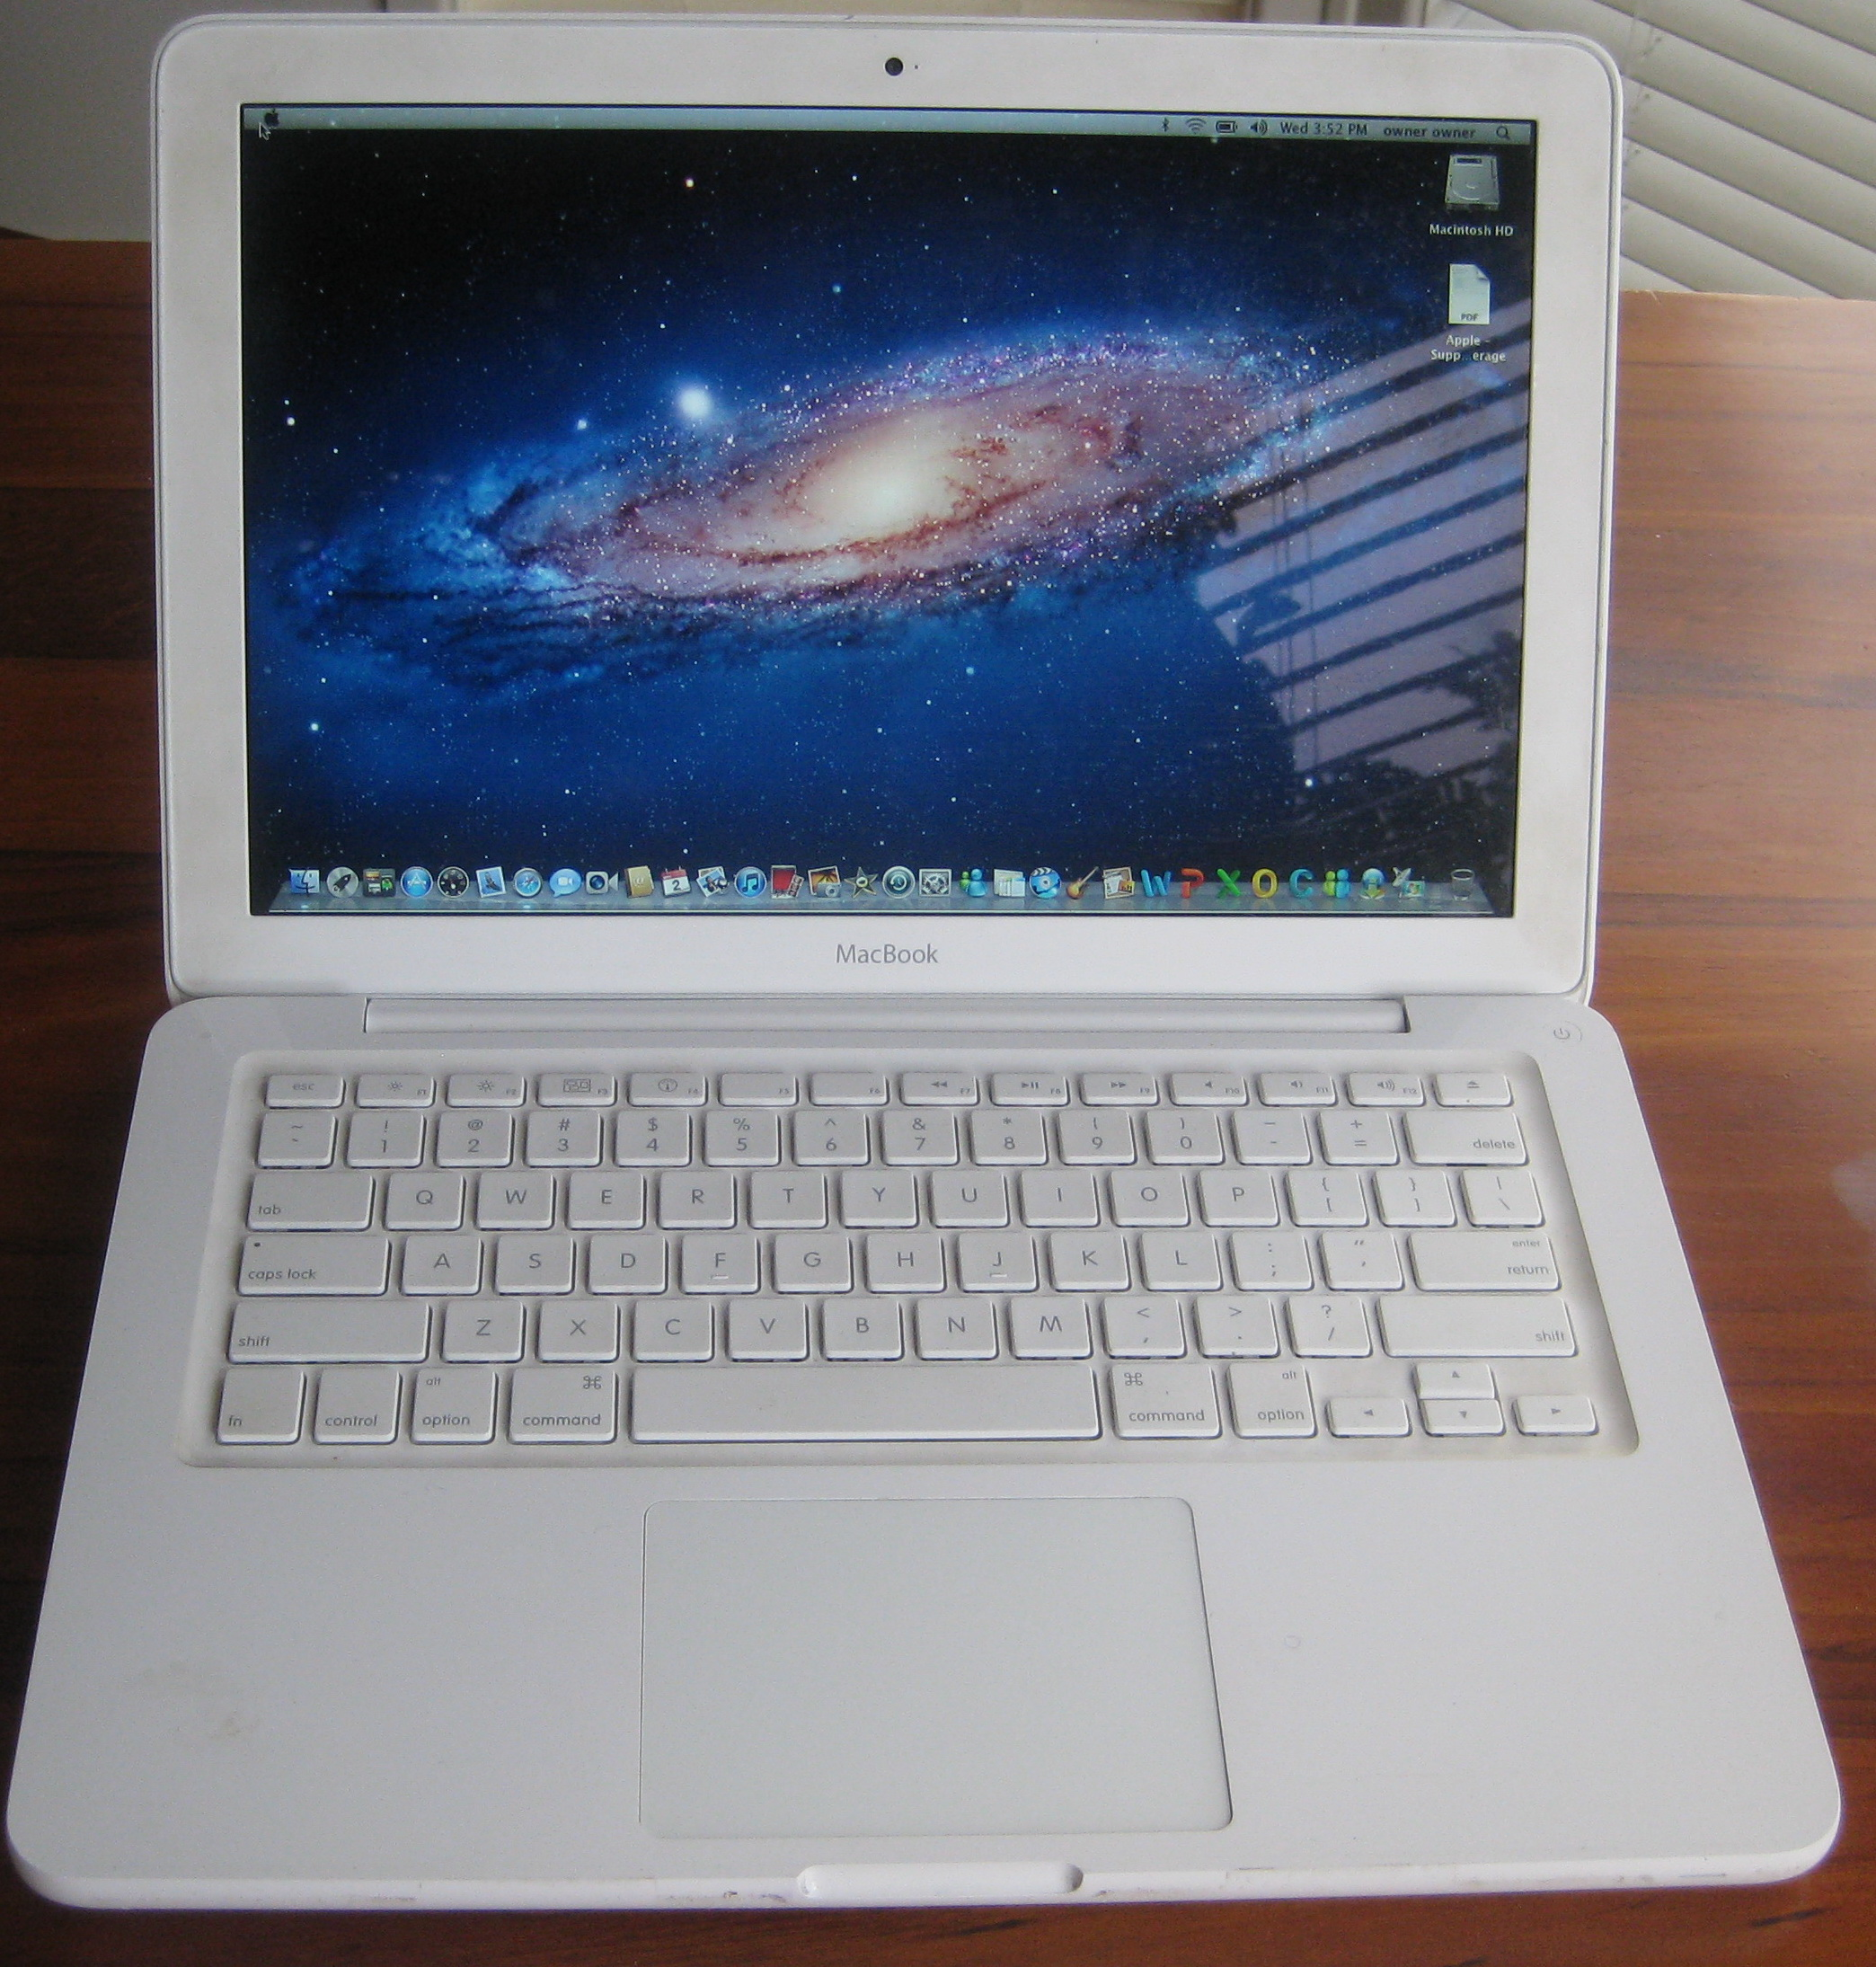 Apple Macbook V2 2 gig